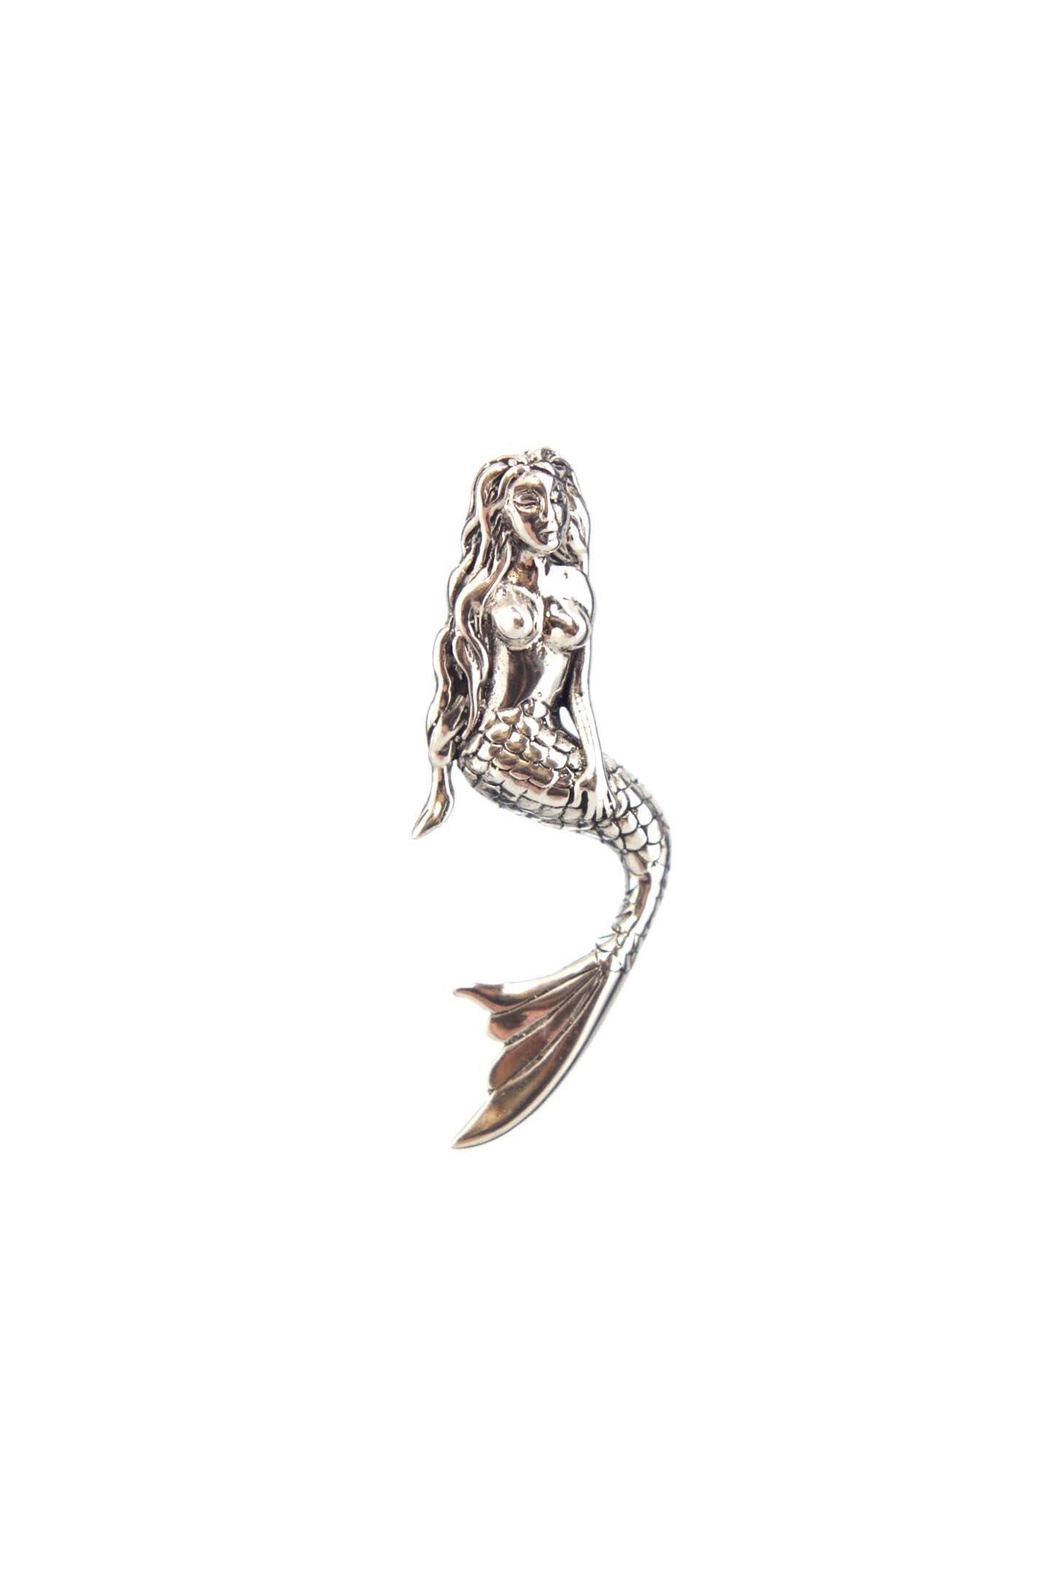 Som's Sterling-Silver Mermaid Pendant - Main Image